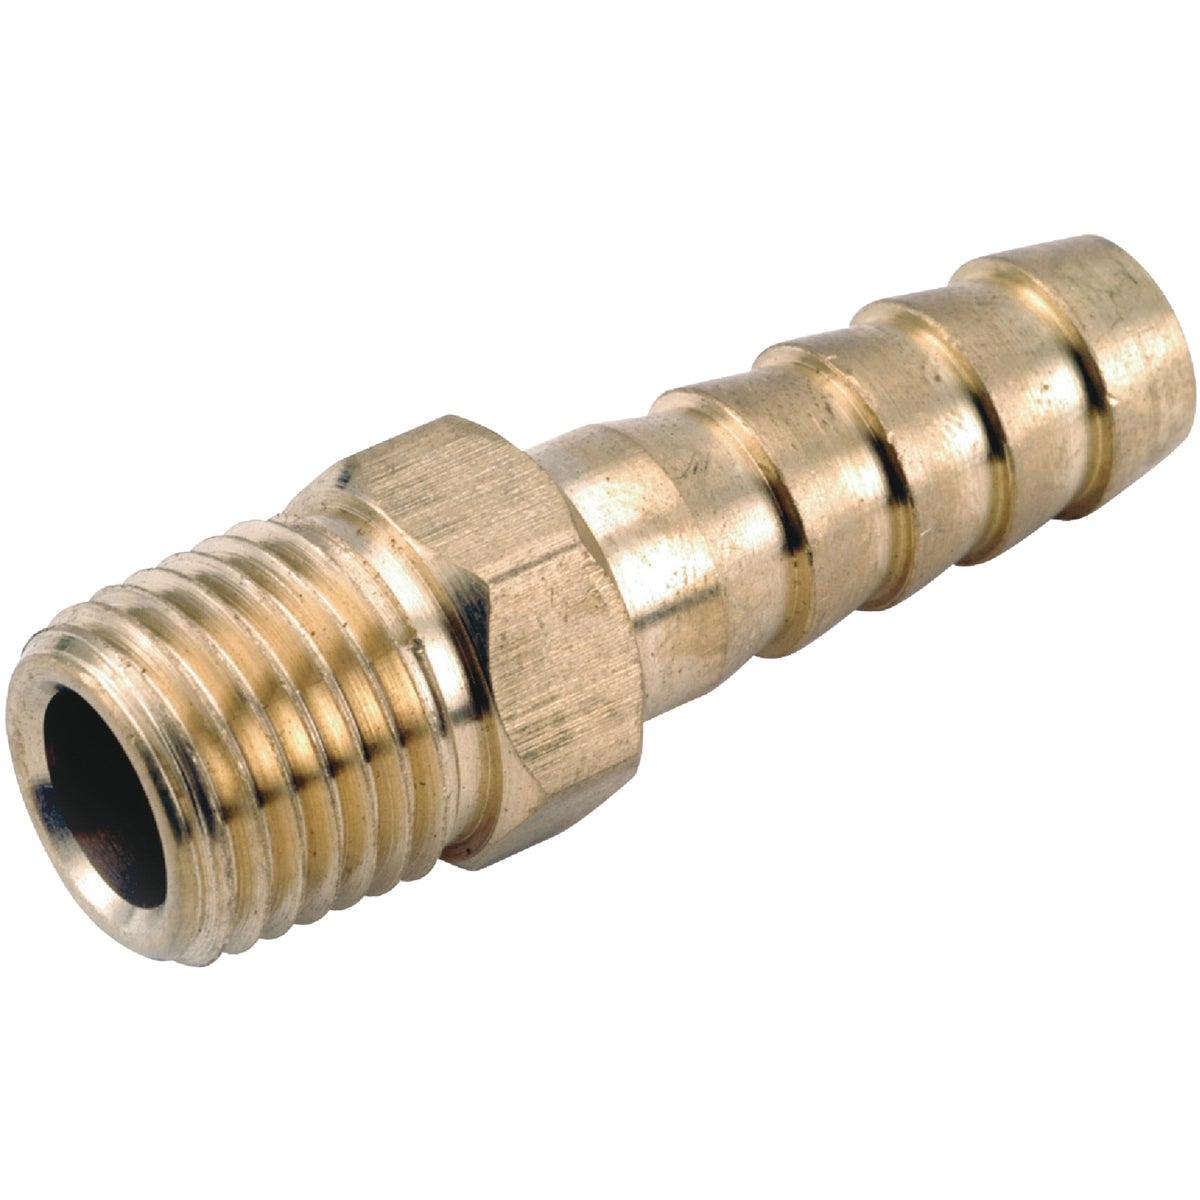 1/4IDX1/2MPT HOSE BARB - 757001-0408 by Anderson Metals Corp